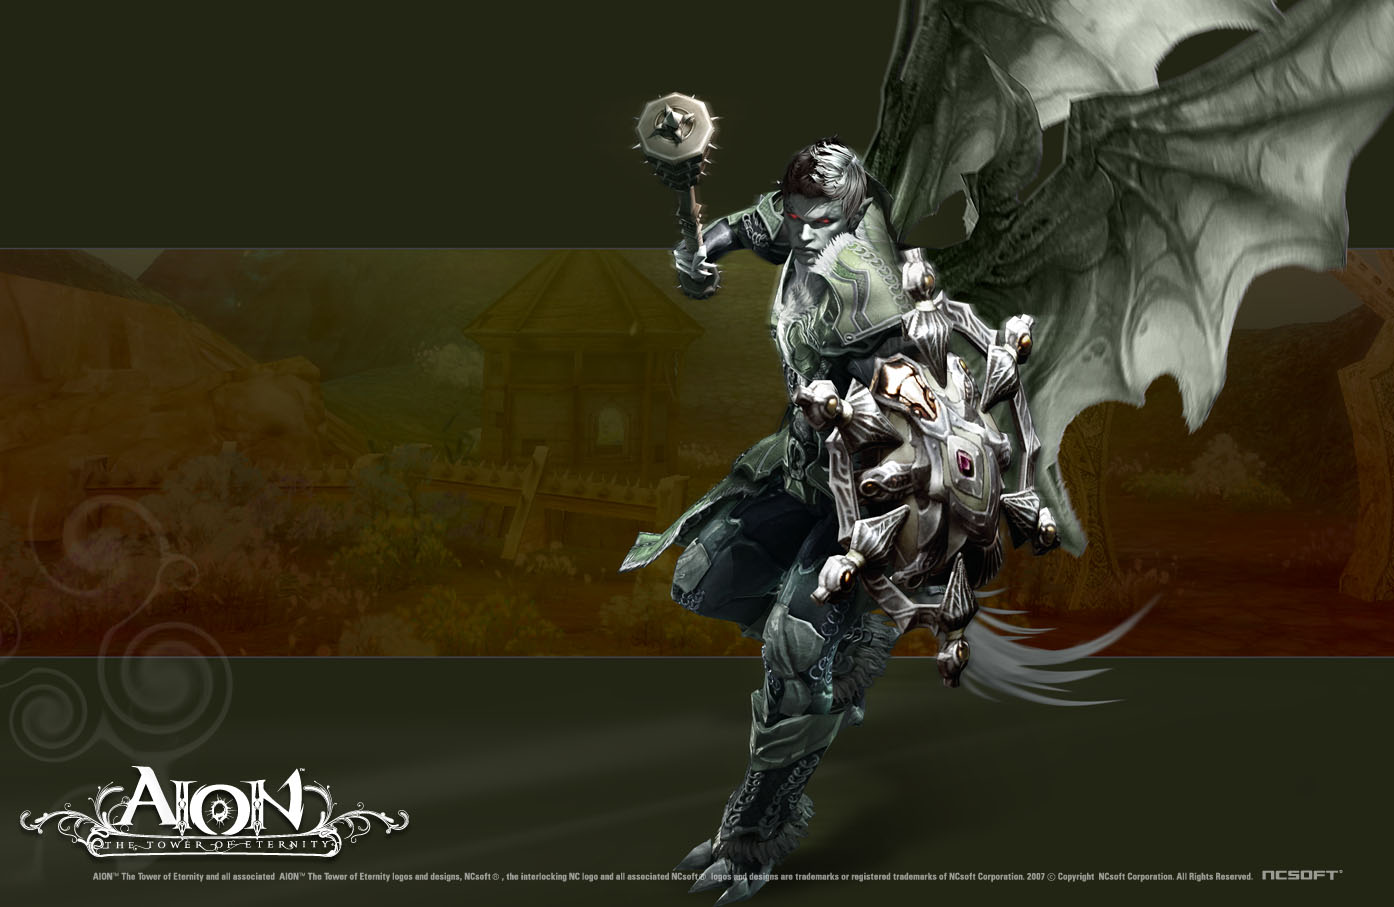 http://3.bp.blogspot.com/-W56MNcTVtFQ/TaJWzFz73fI/AAAAAAAABQo/lp_Pr1Tvwac/s1600/AION-Wallpaper-Screenshot-PC-Game-Online-12.jpg